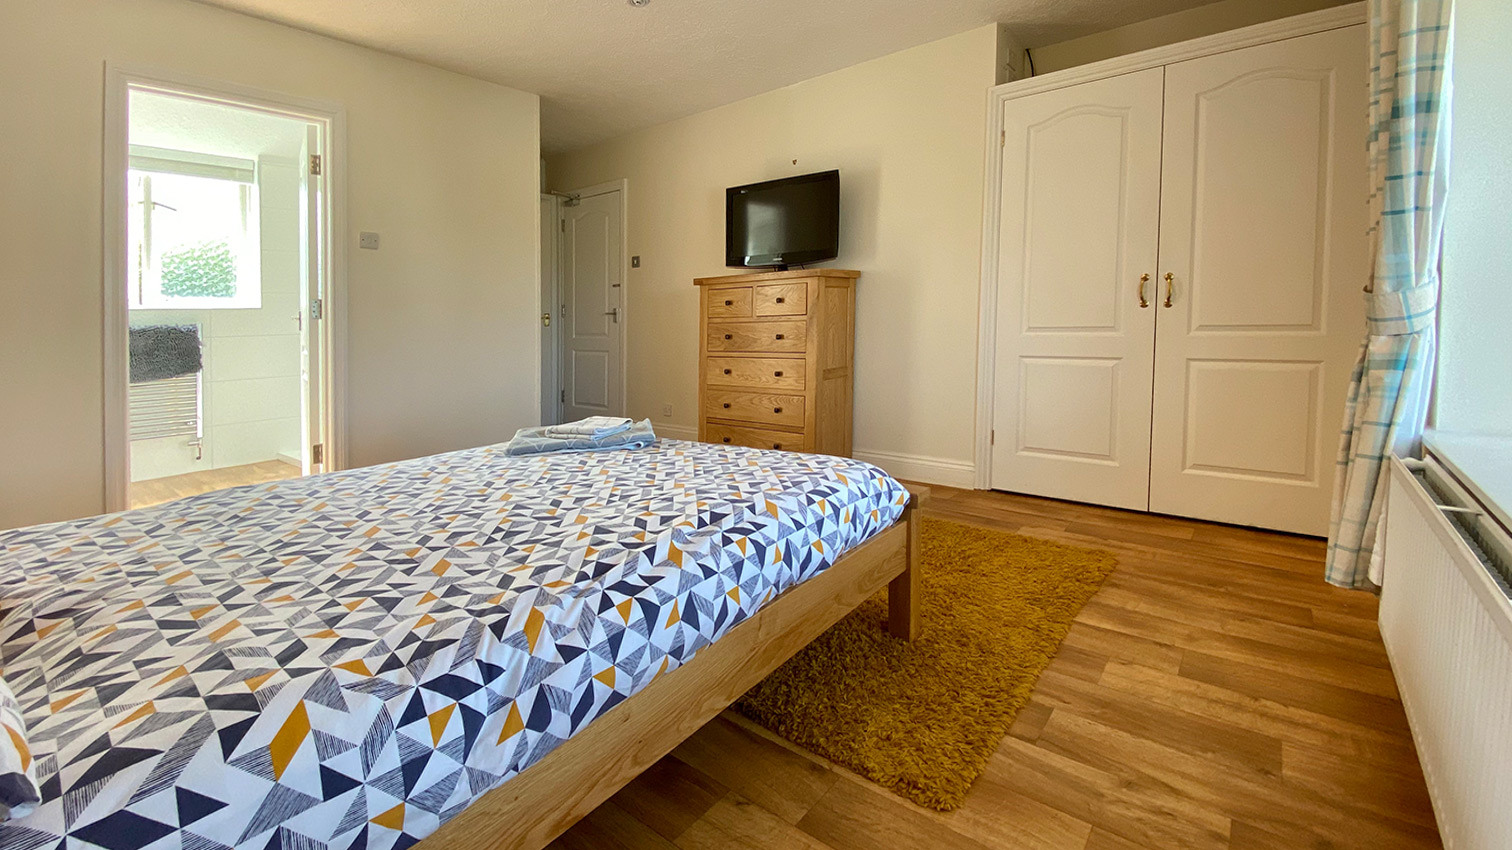 Orbis Group - Awel Y Mor Saundersfoot inside adult bedroom